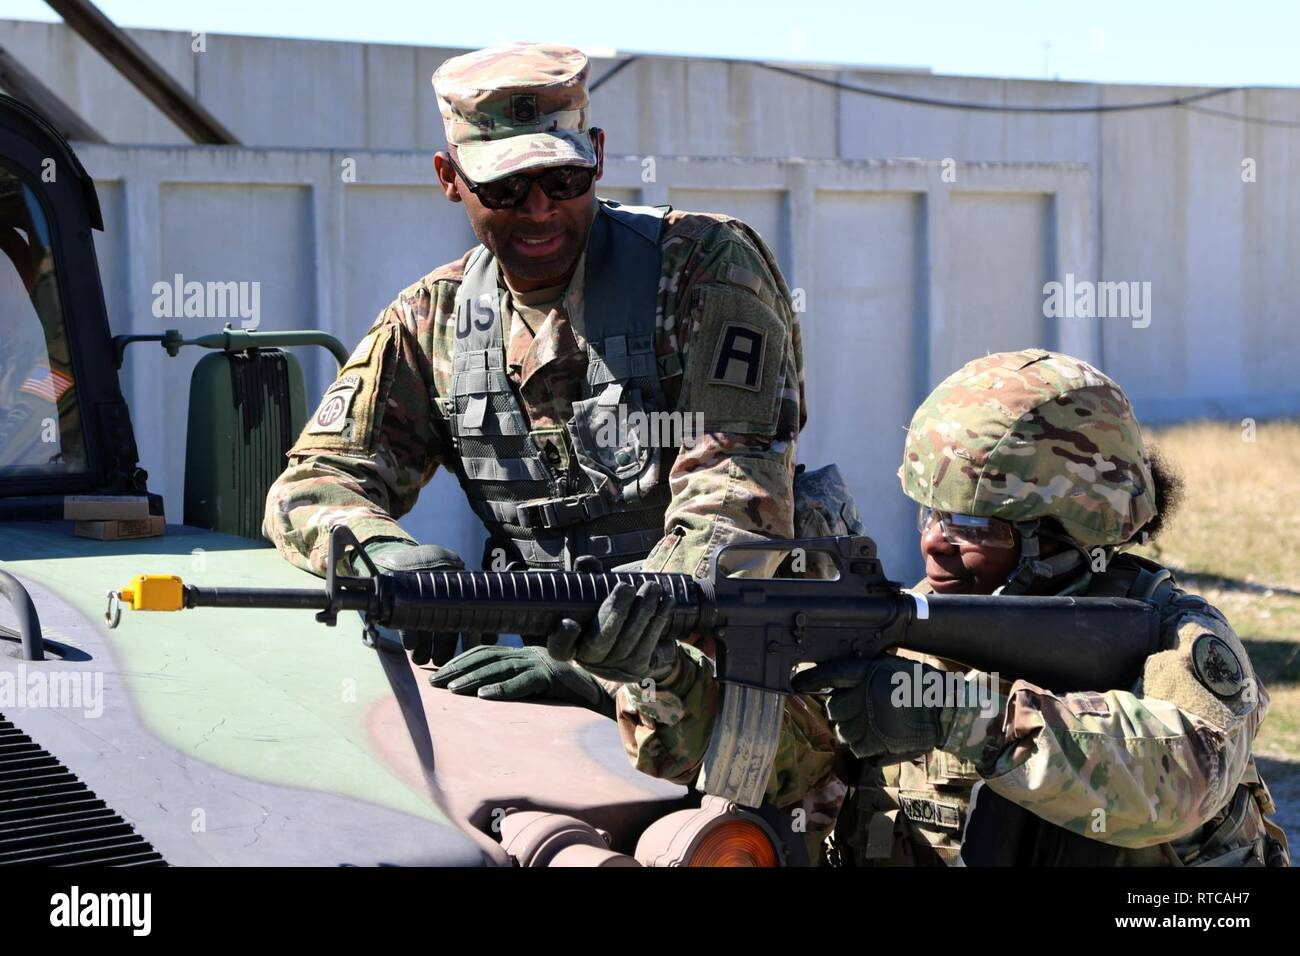 120th Infantry Brigade High Resolution Stock Photography And Images Alamy